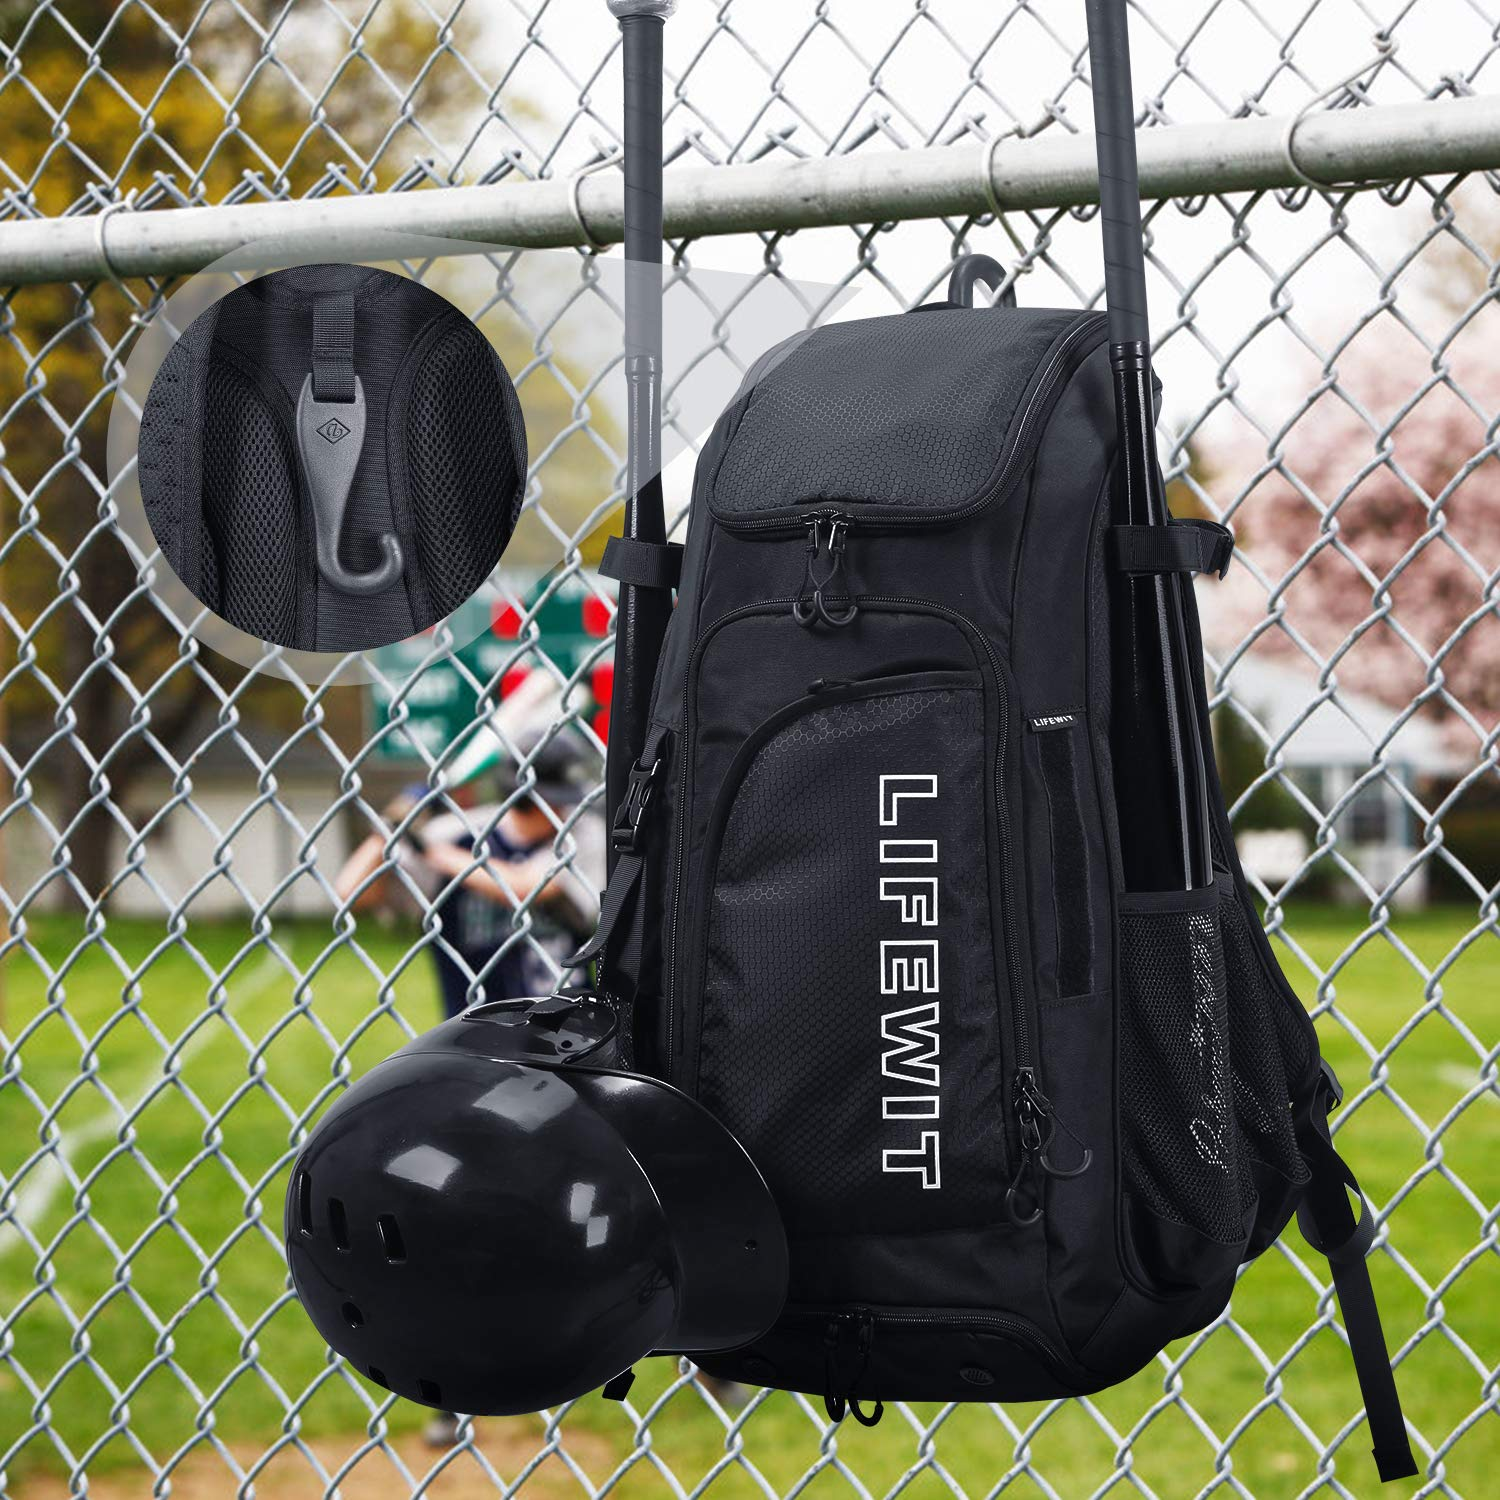 Lifewit Large Baseball Bat Backpack,Youth Softball Bag, T-Ball Equipment & Gear for Mens Adults - Fits 4 Bats, Helmet, Glove - Vented Shoes Compartment, Fence Hook by Lifewit (Image #6)